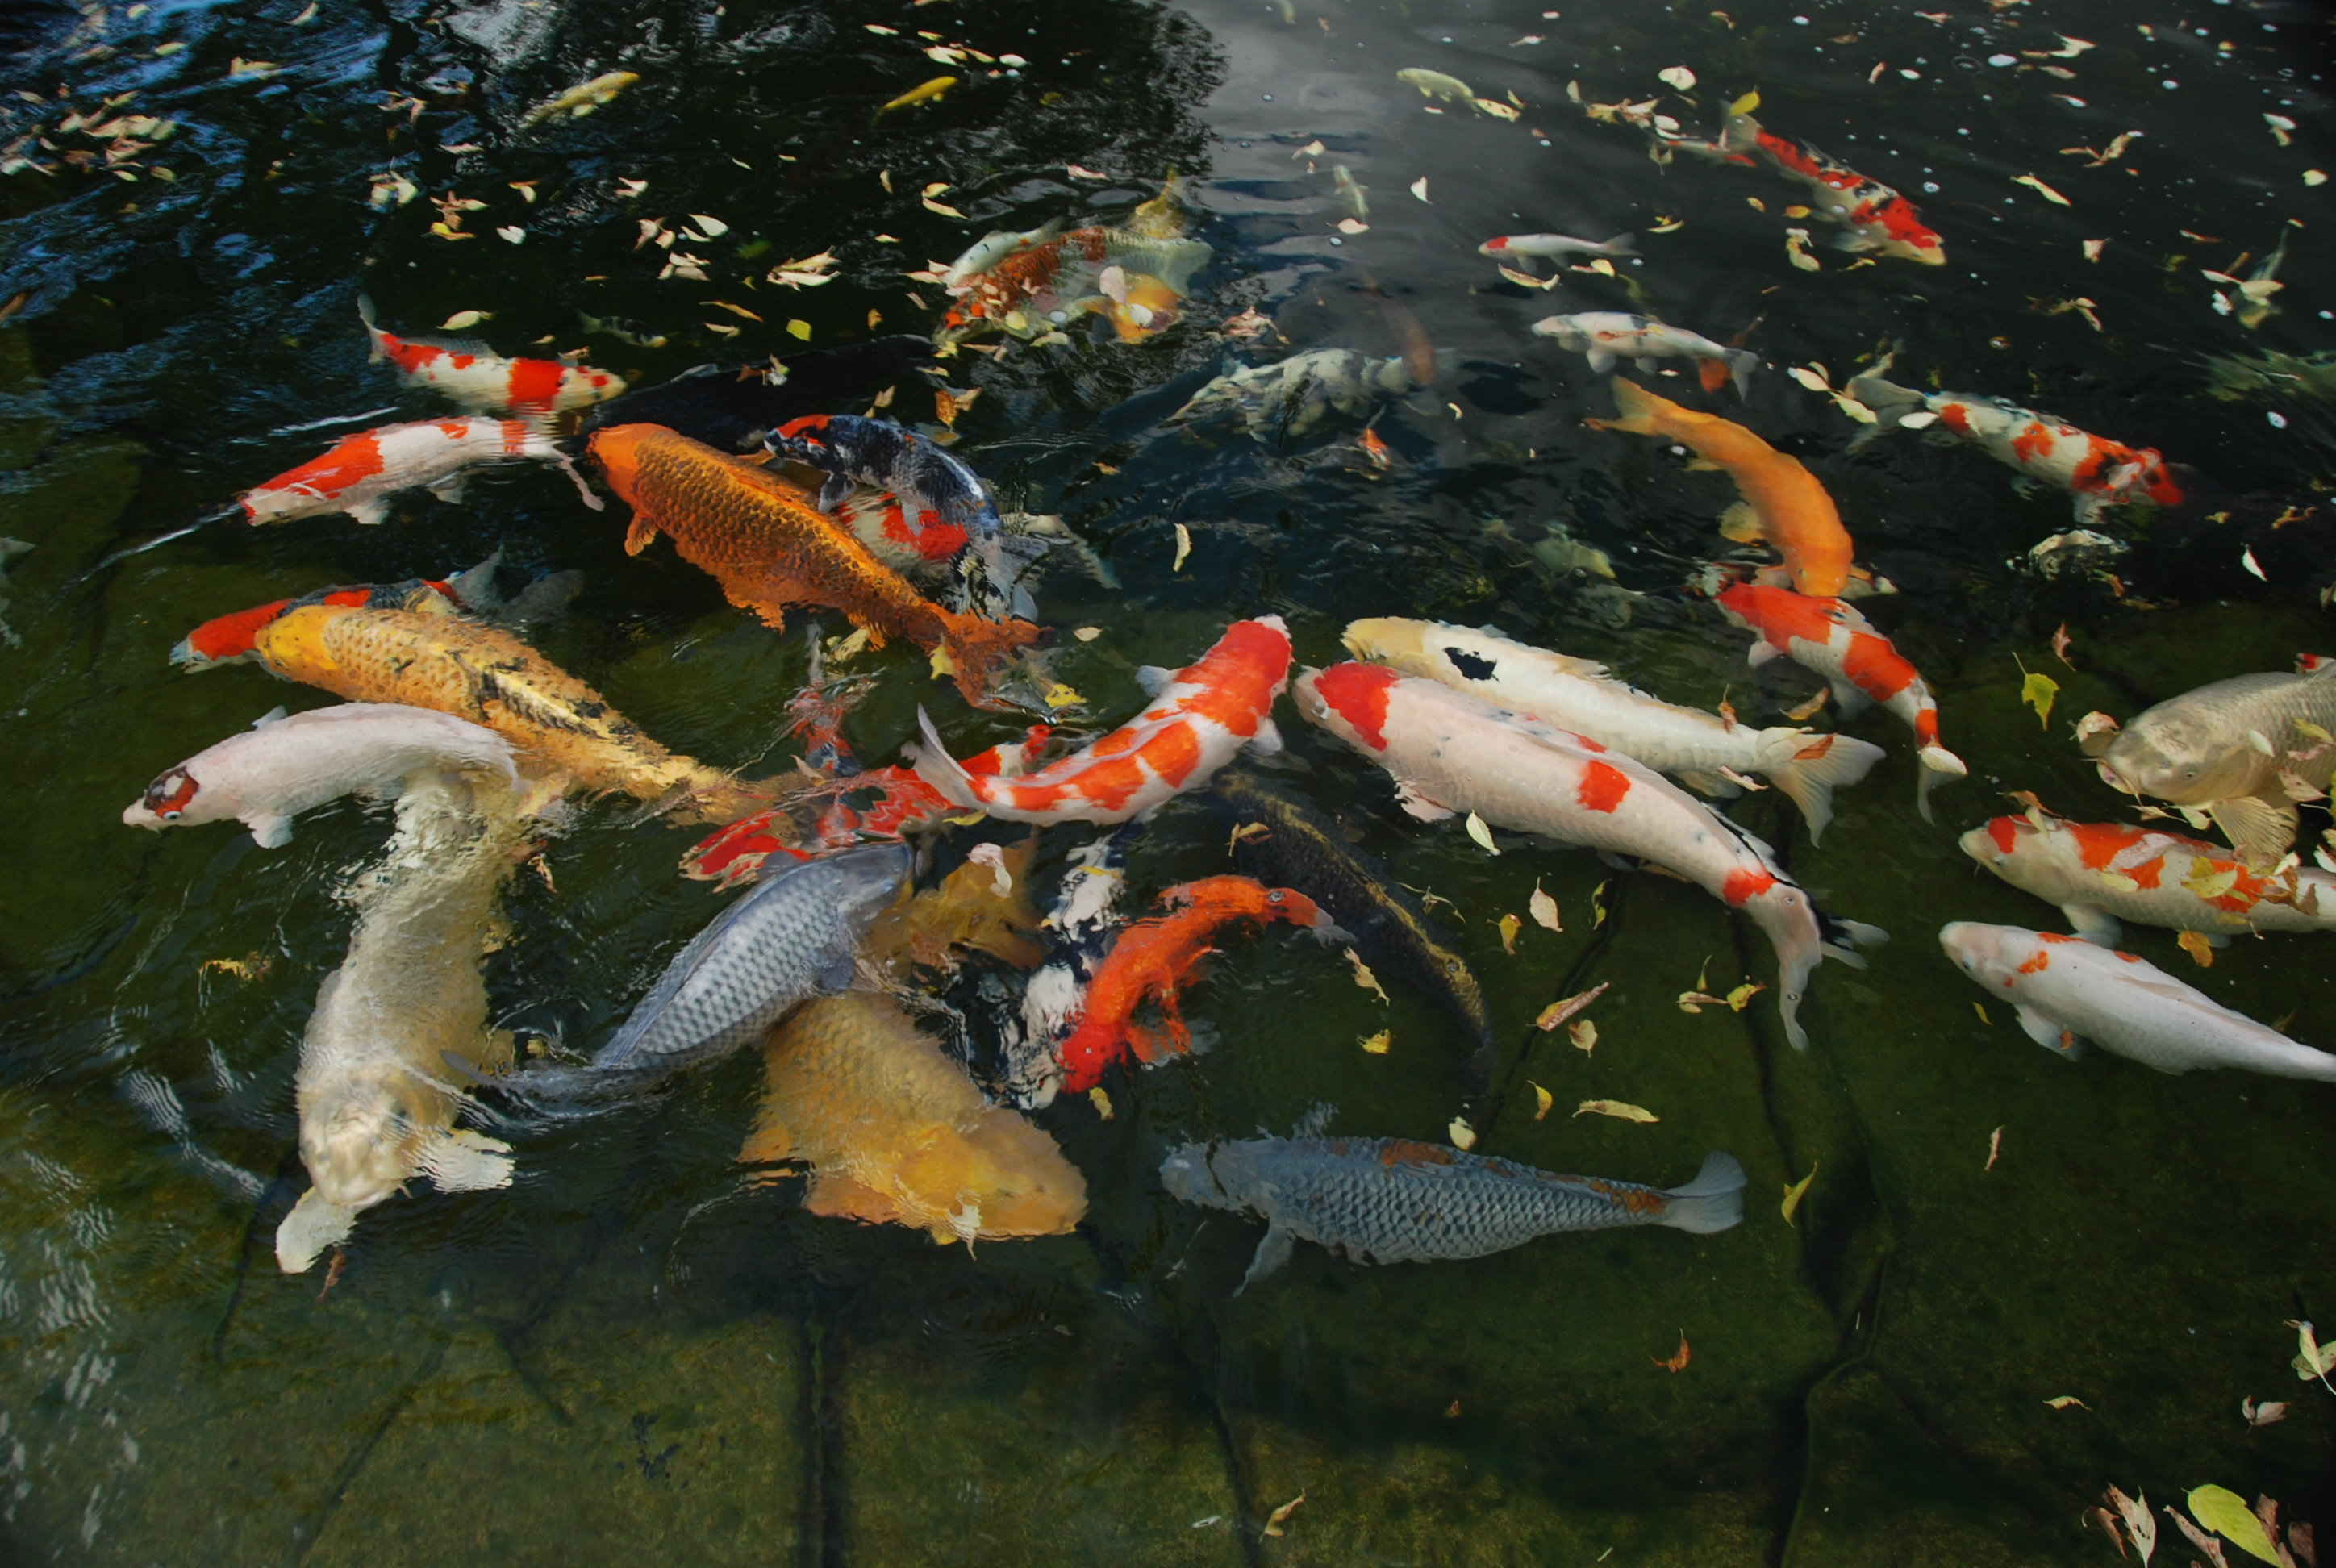 Koi HD wallpapers, Desktop wallpaper - most viewed